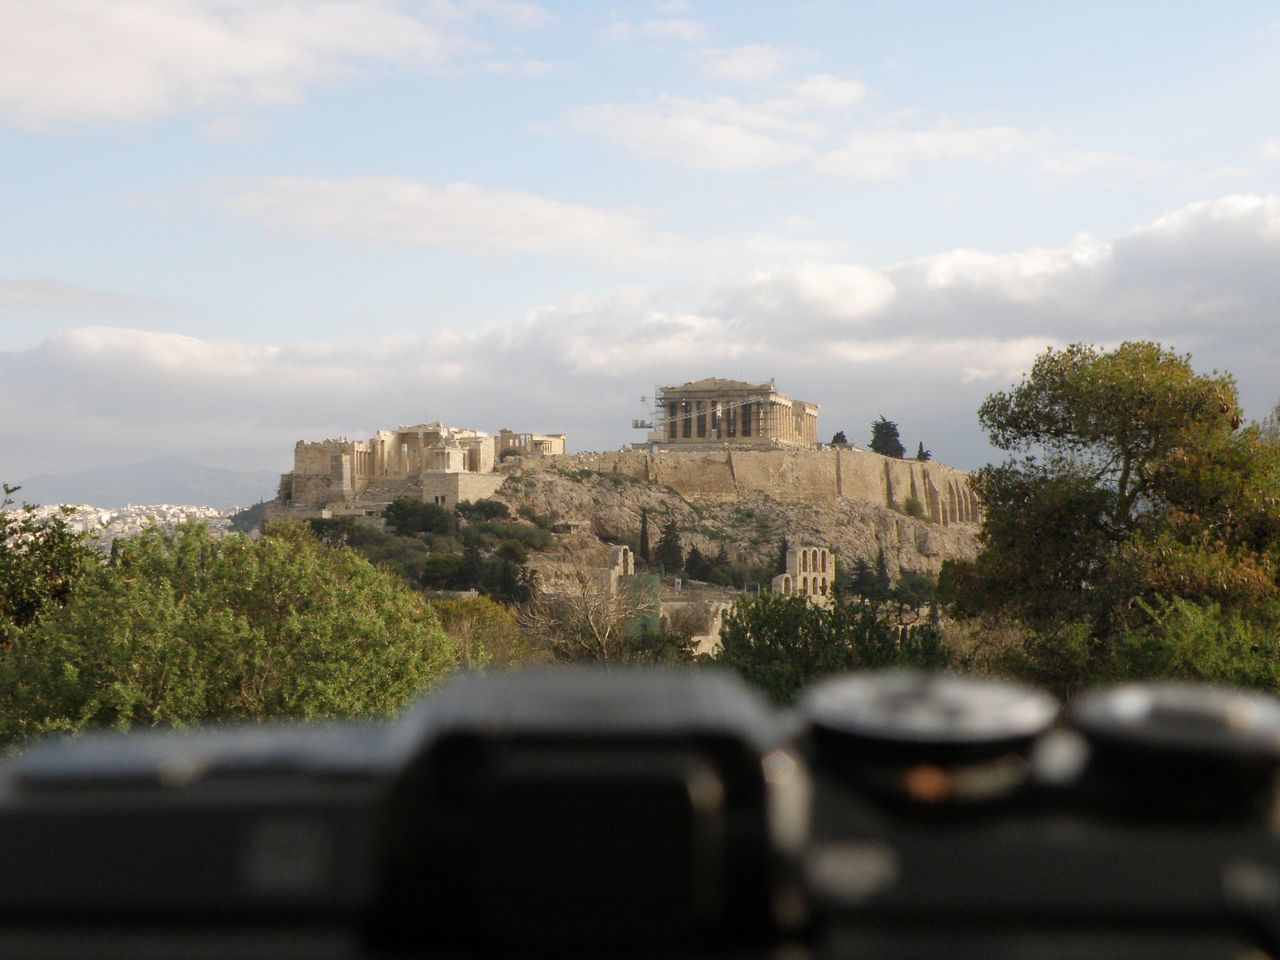 History Cloud - Sky Sky Travel Destinations No People War Day Tree Architecture City Outdoors Ancient Civilization Close-up Doorway Wood - Material Building Exterior Built Structure Architecture Parthenon Acropolis Greece Parthenon Greece Parthenon Photograph Photography Themes Film Reel Camera Film